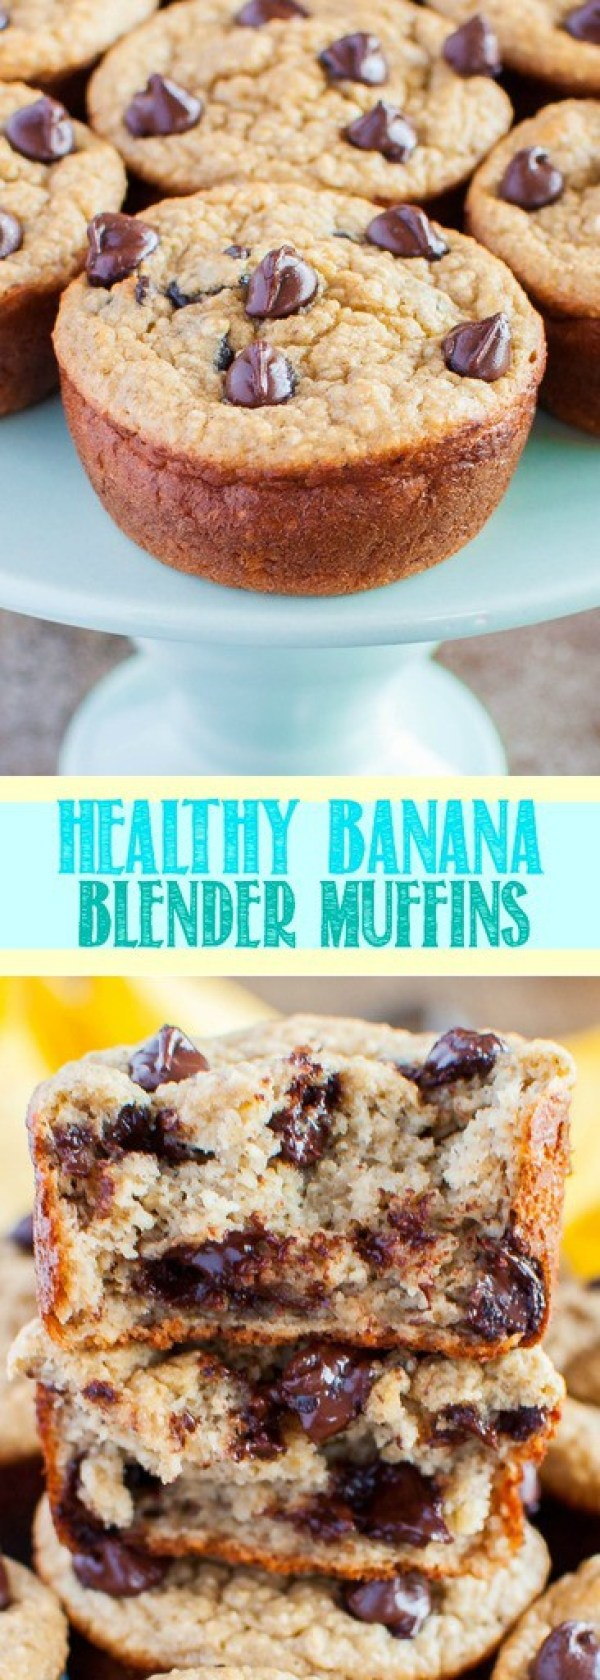 These Healthy Banana Blender Muffins are quick and easy to make. They are kid friendly and completely delicious! A wonderful guilt free breakfast or snack!